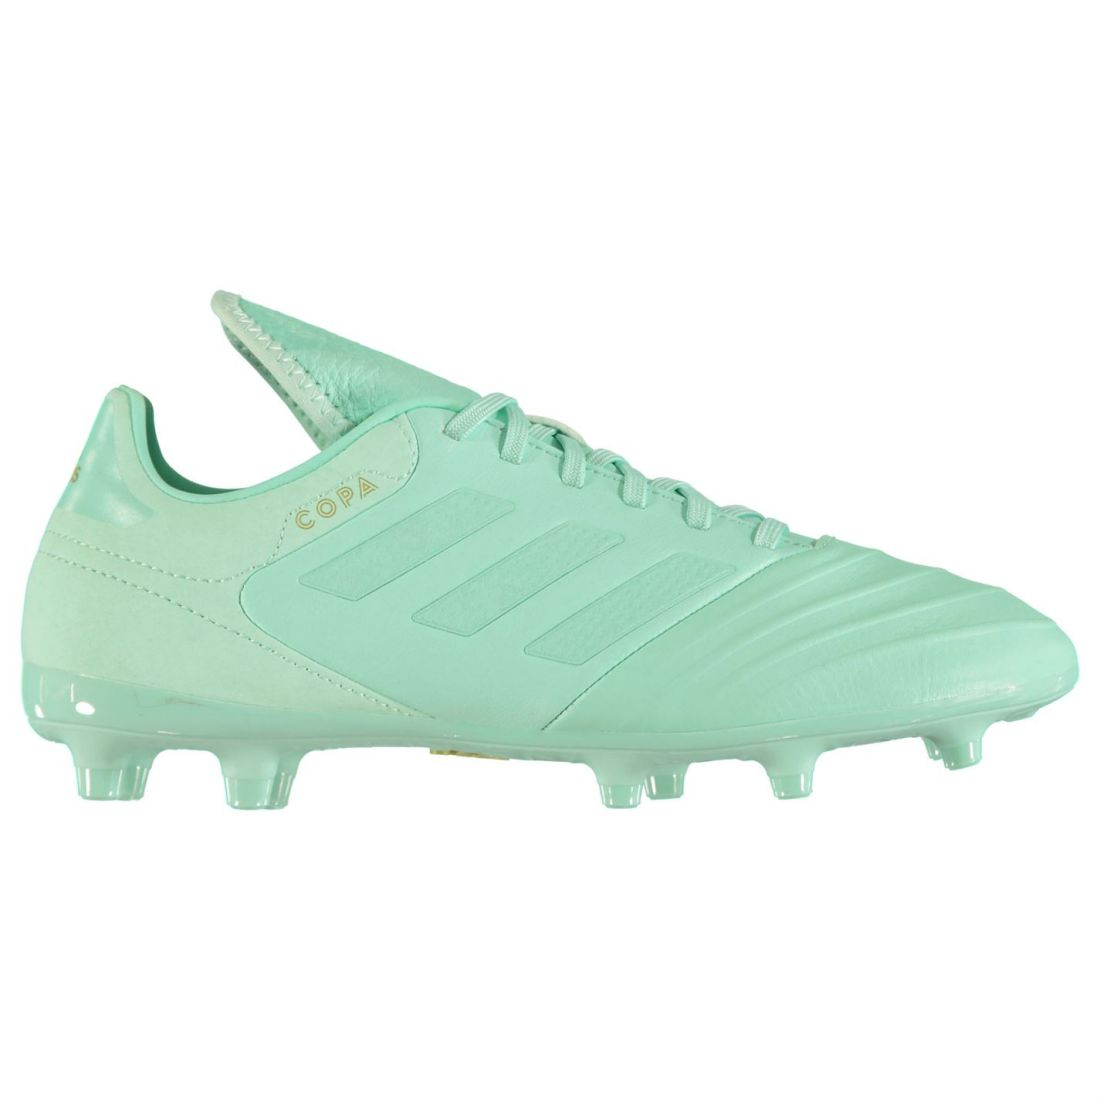 cheap for discount 4da39 799d4 adidas Copa 18.3 FG Football Boots Mens Gents Firm Ground Laces Fastened  Padded